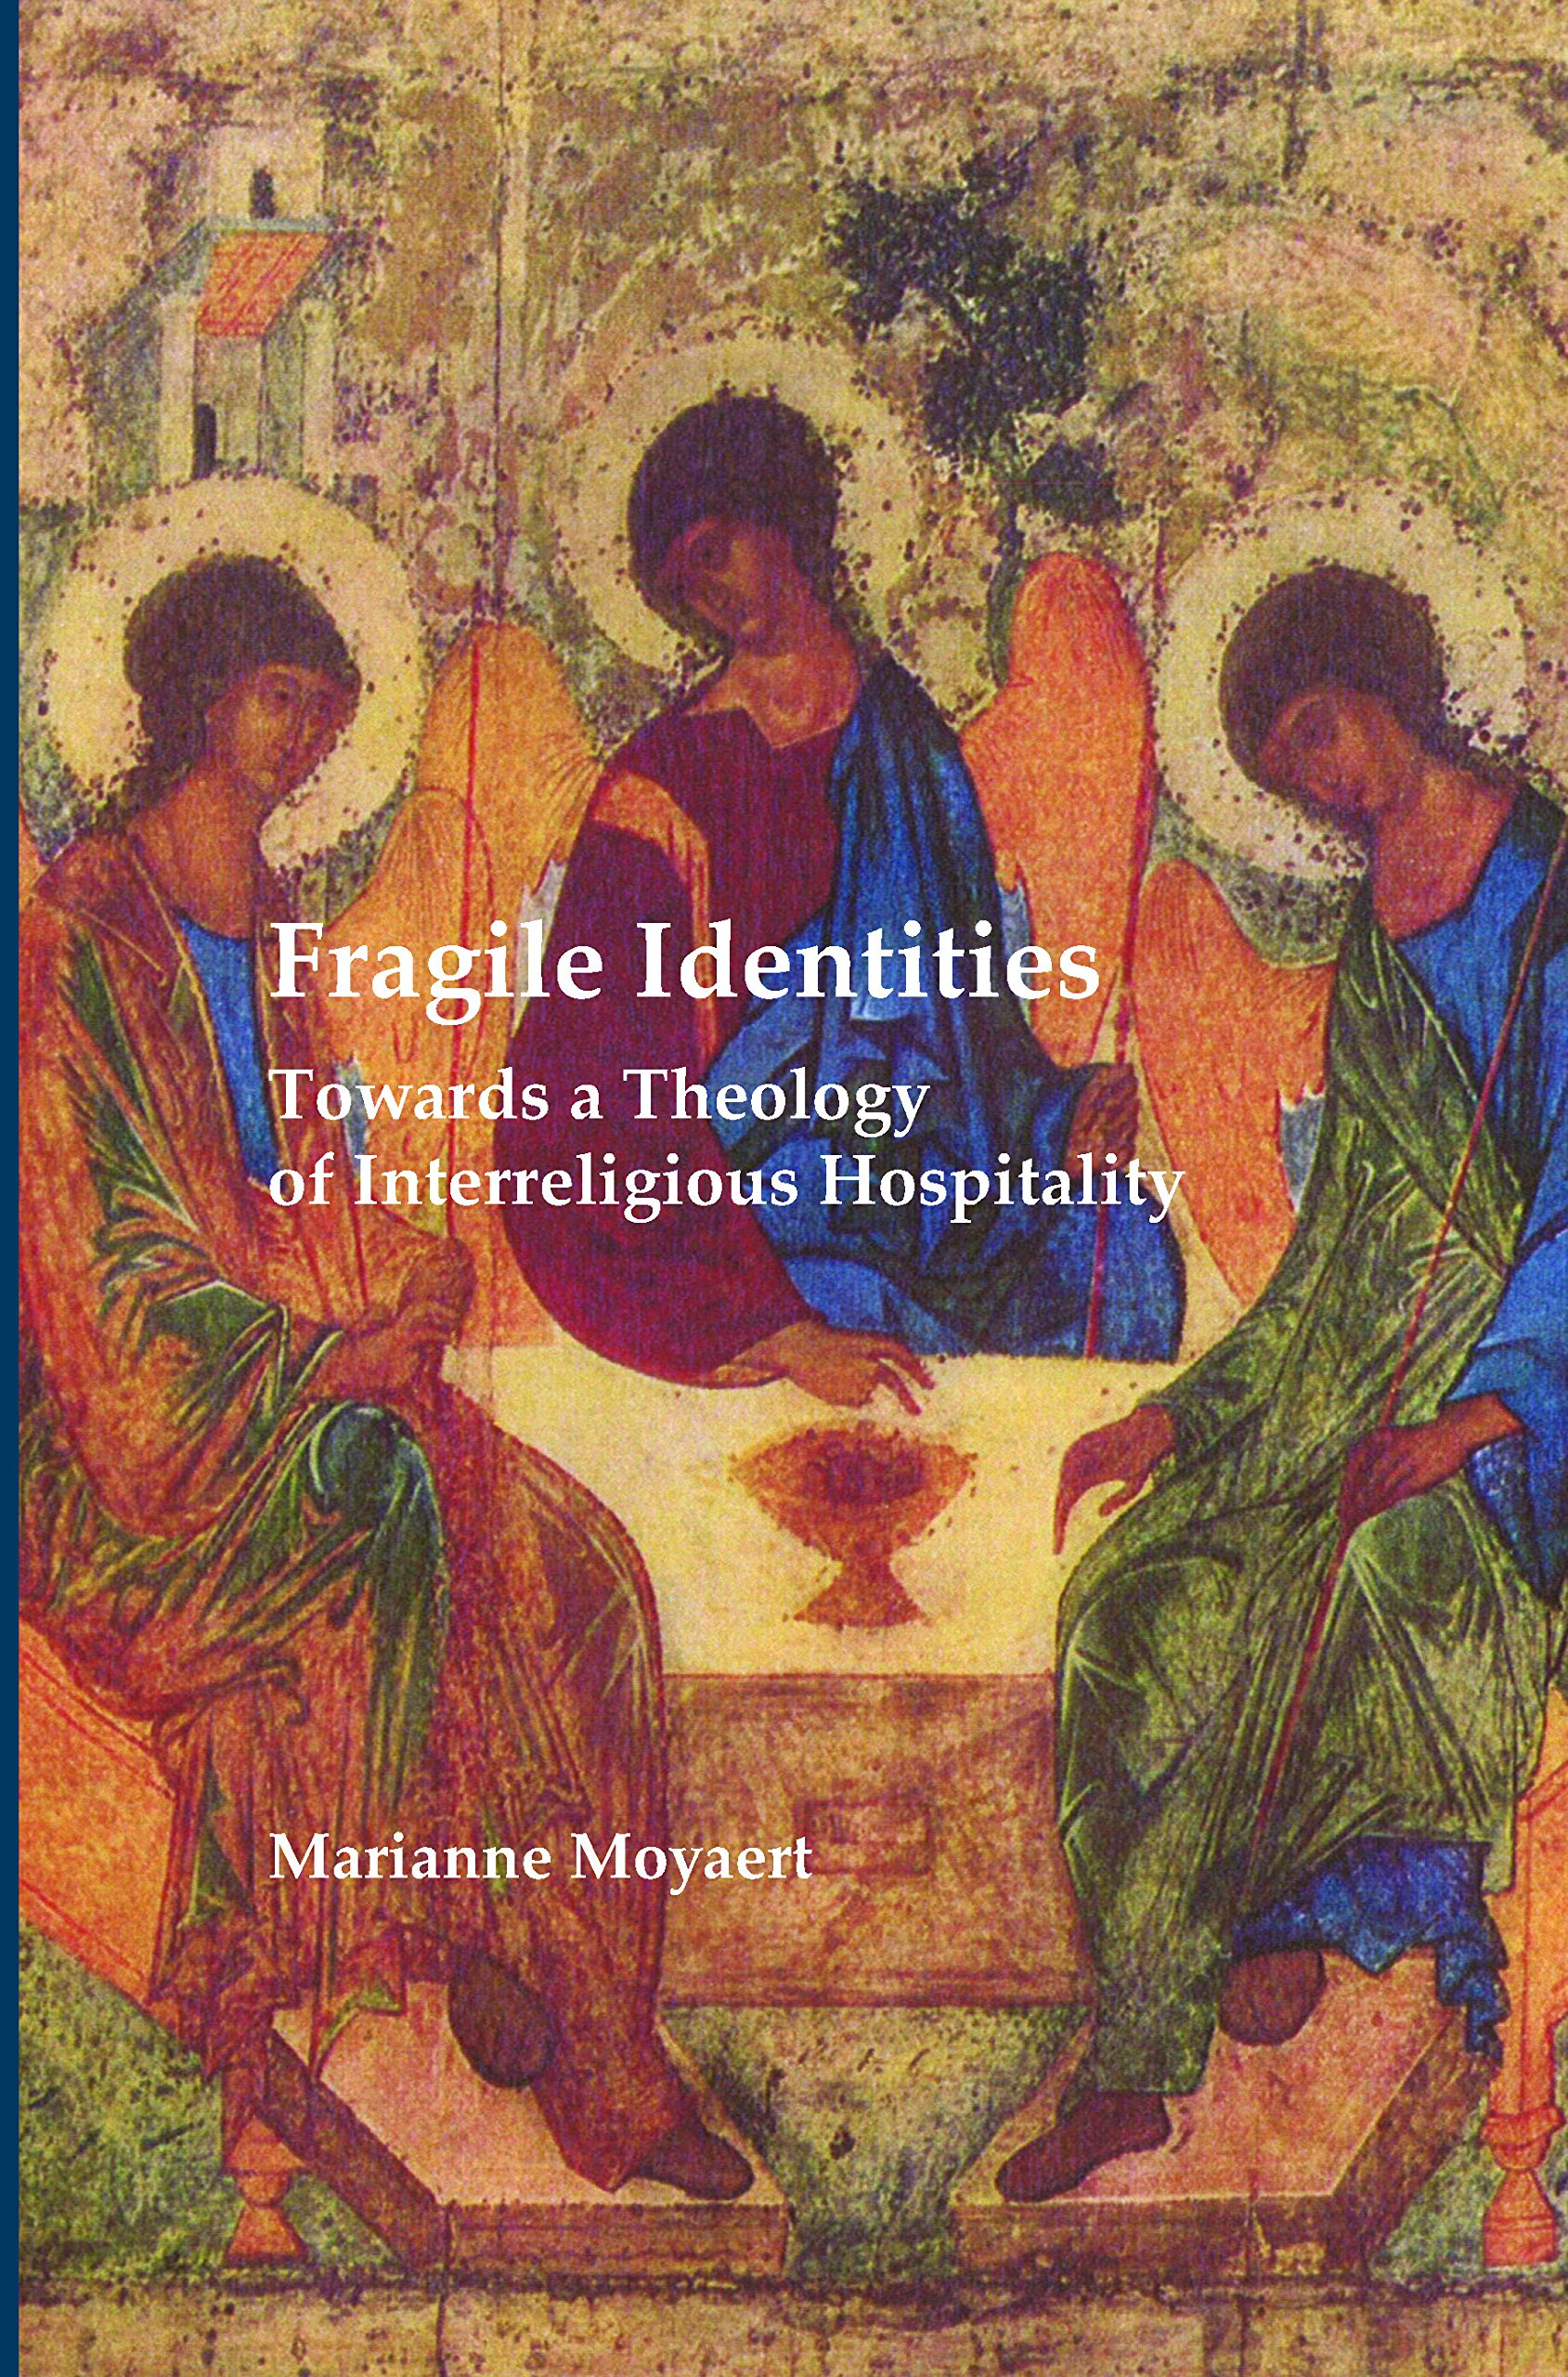 Download Fragile Identities: Towards a Theology of Interreligious Hospitality. (Currents of Encounter) PDF